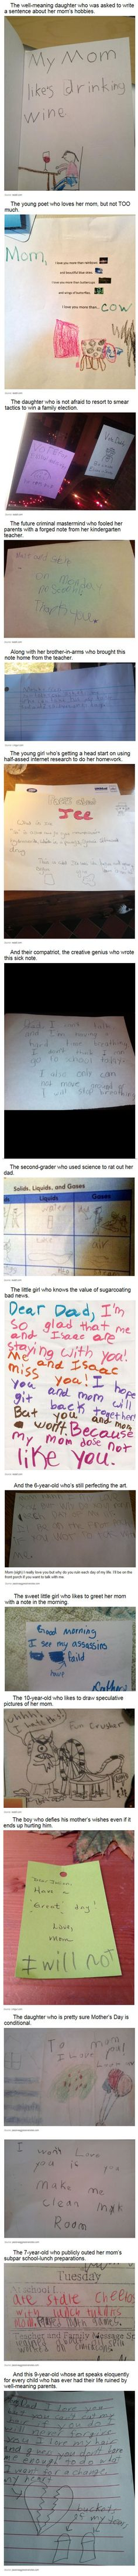 Kids Who Sold Out Their Parents (17 pics) | Mommy Has A Potty MouthMommy Has A Potty Mouth